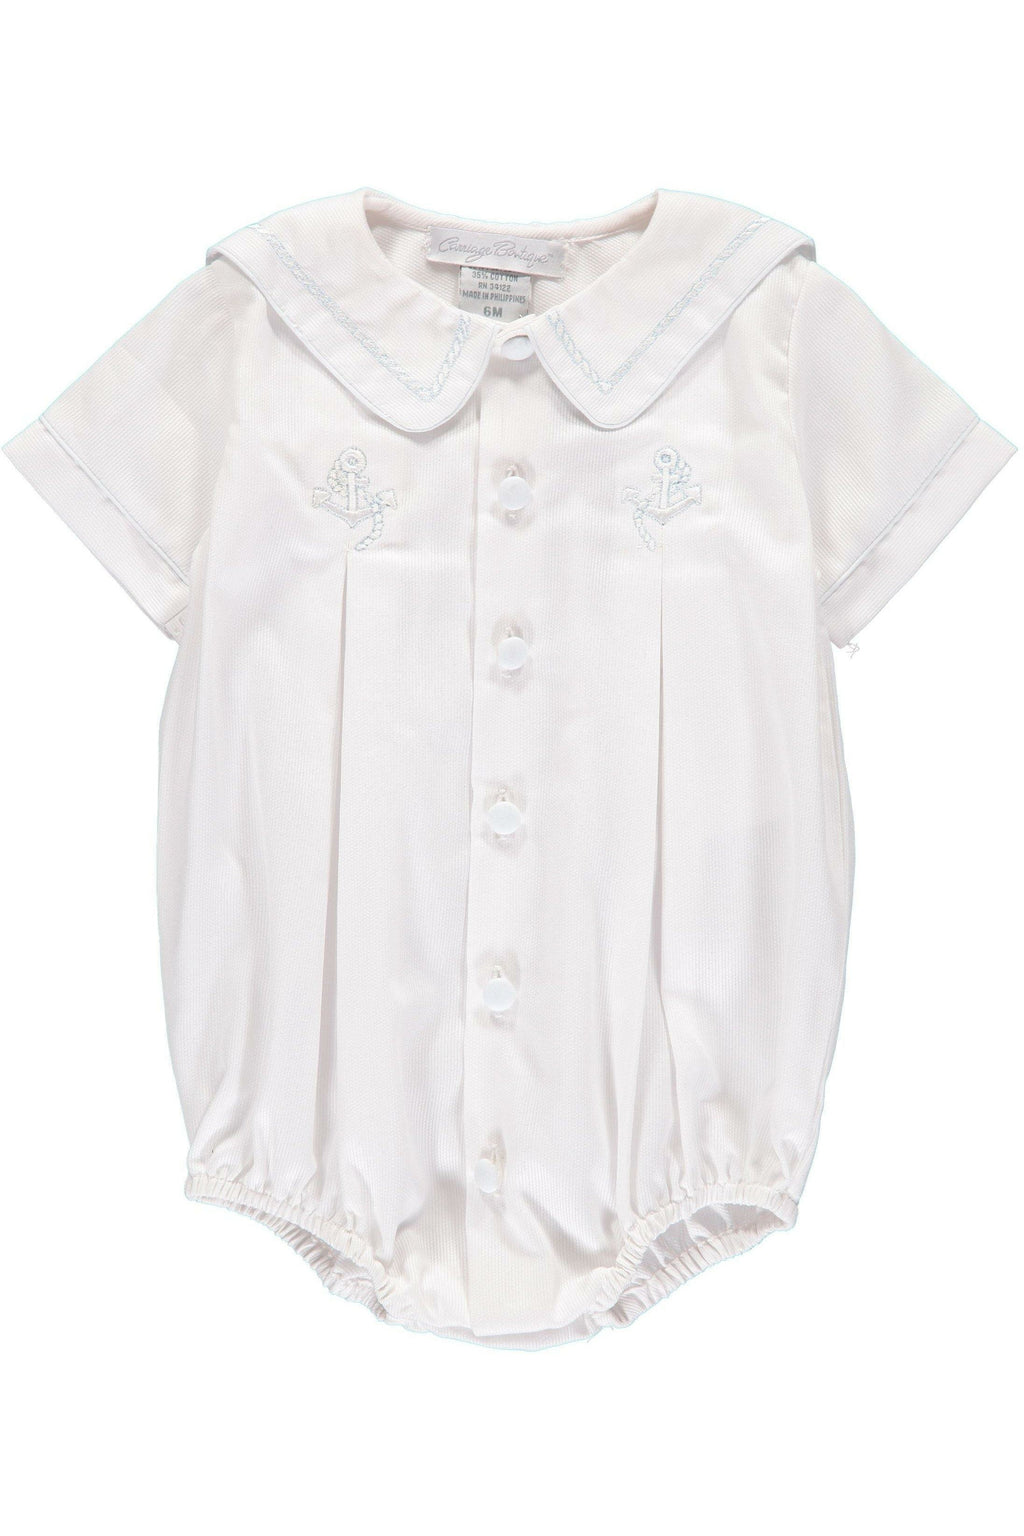 Baby Boy White Anchor Creeper, , Carriage Boutique, Imagewear